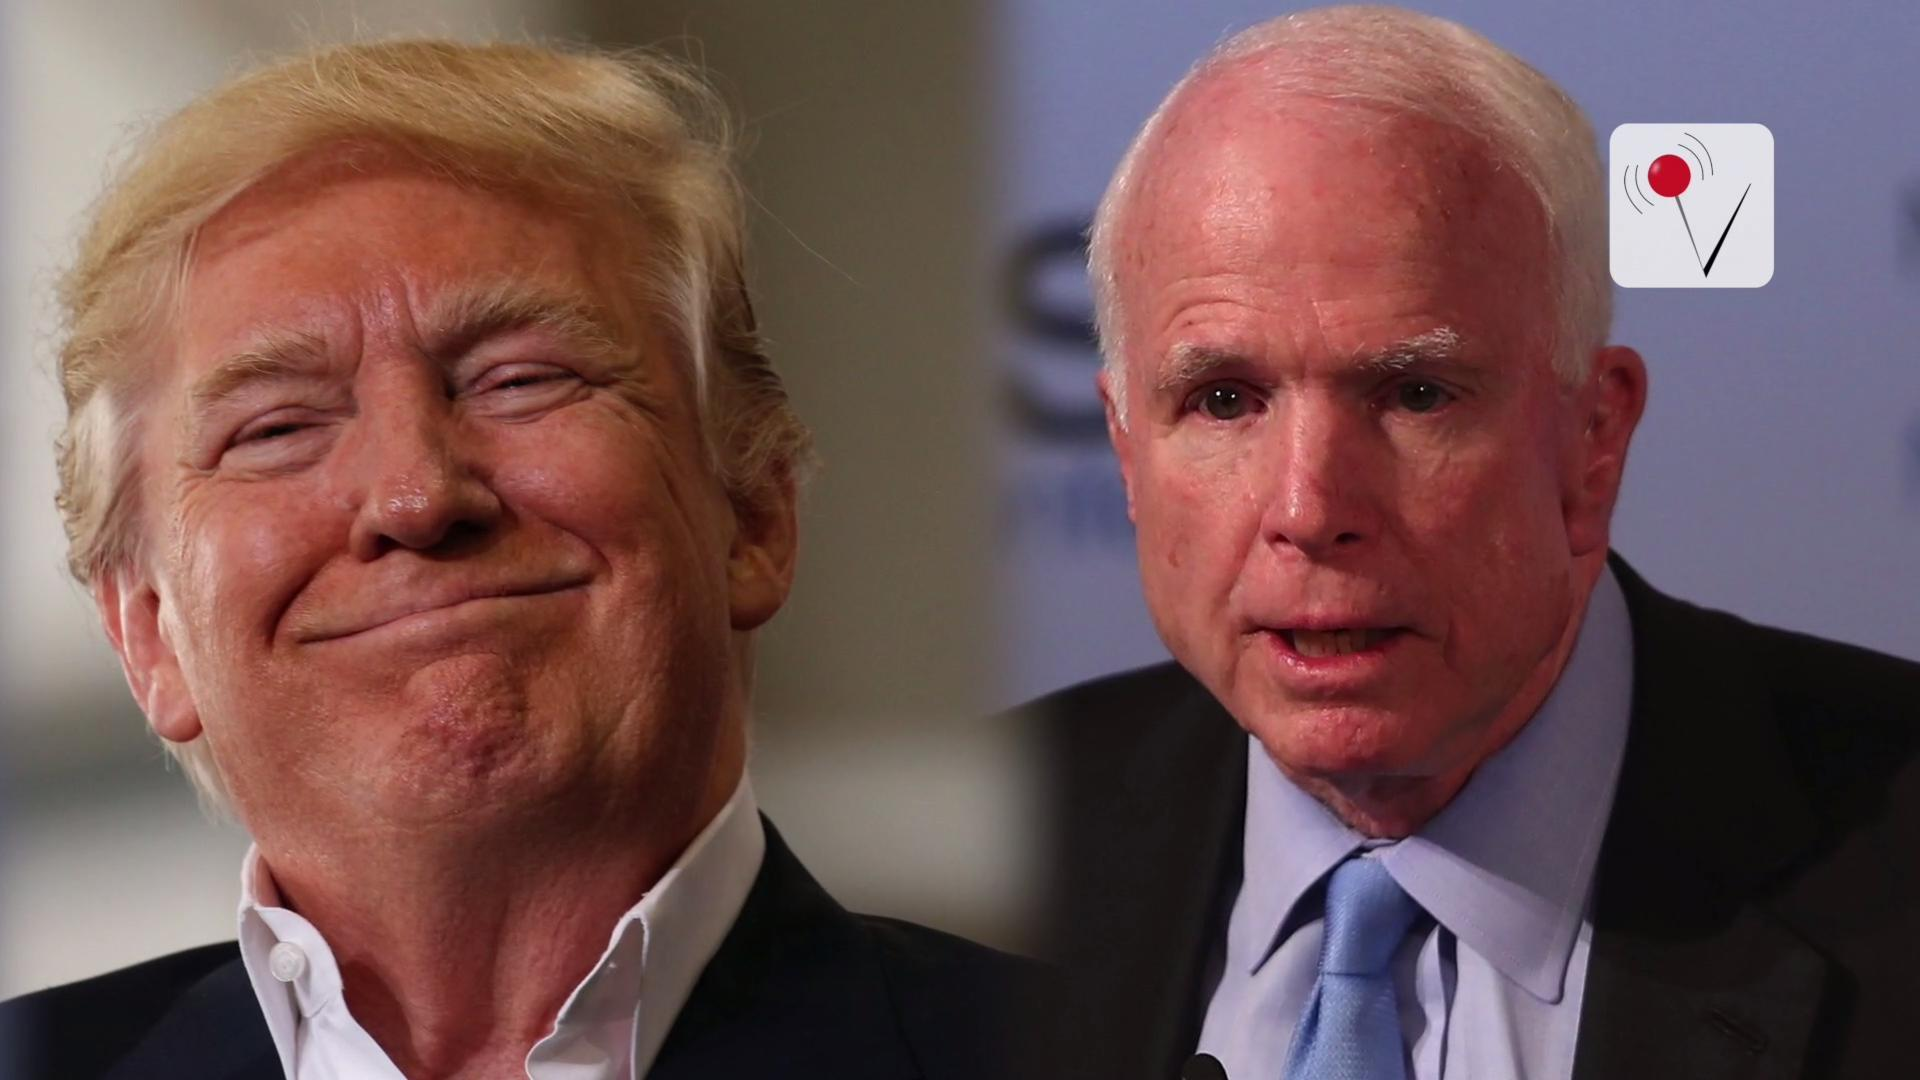 McCain: I Worry About Trump's 'Understanding' of the Issues